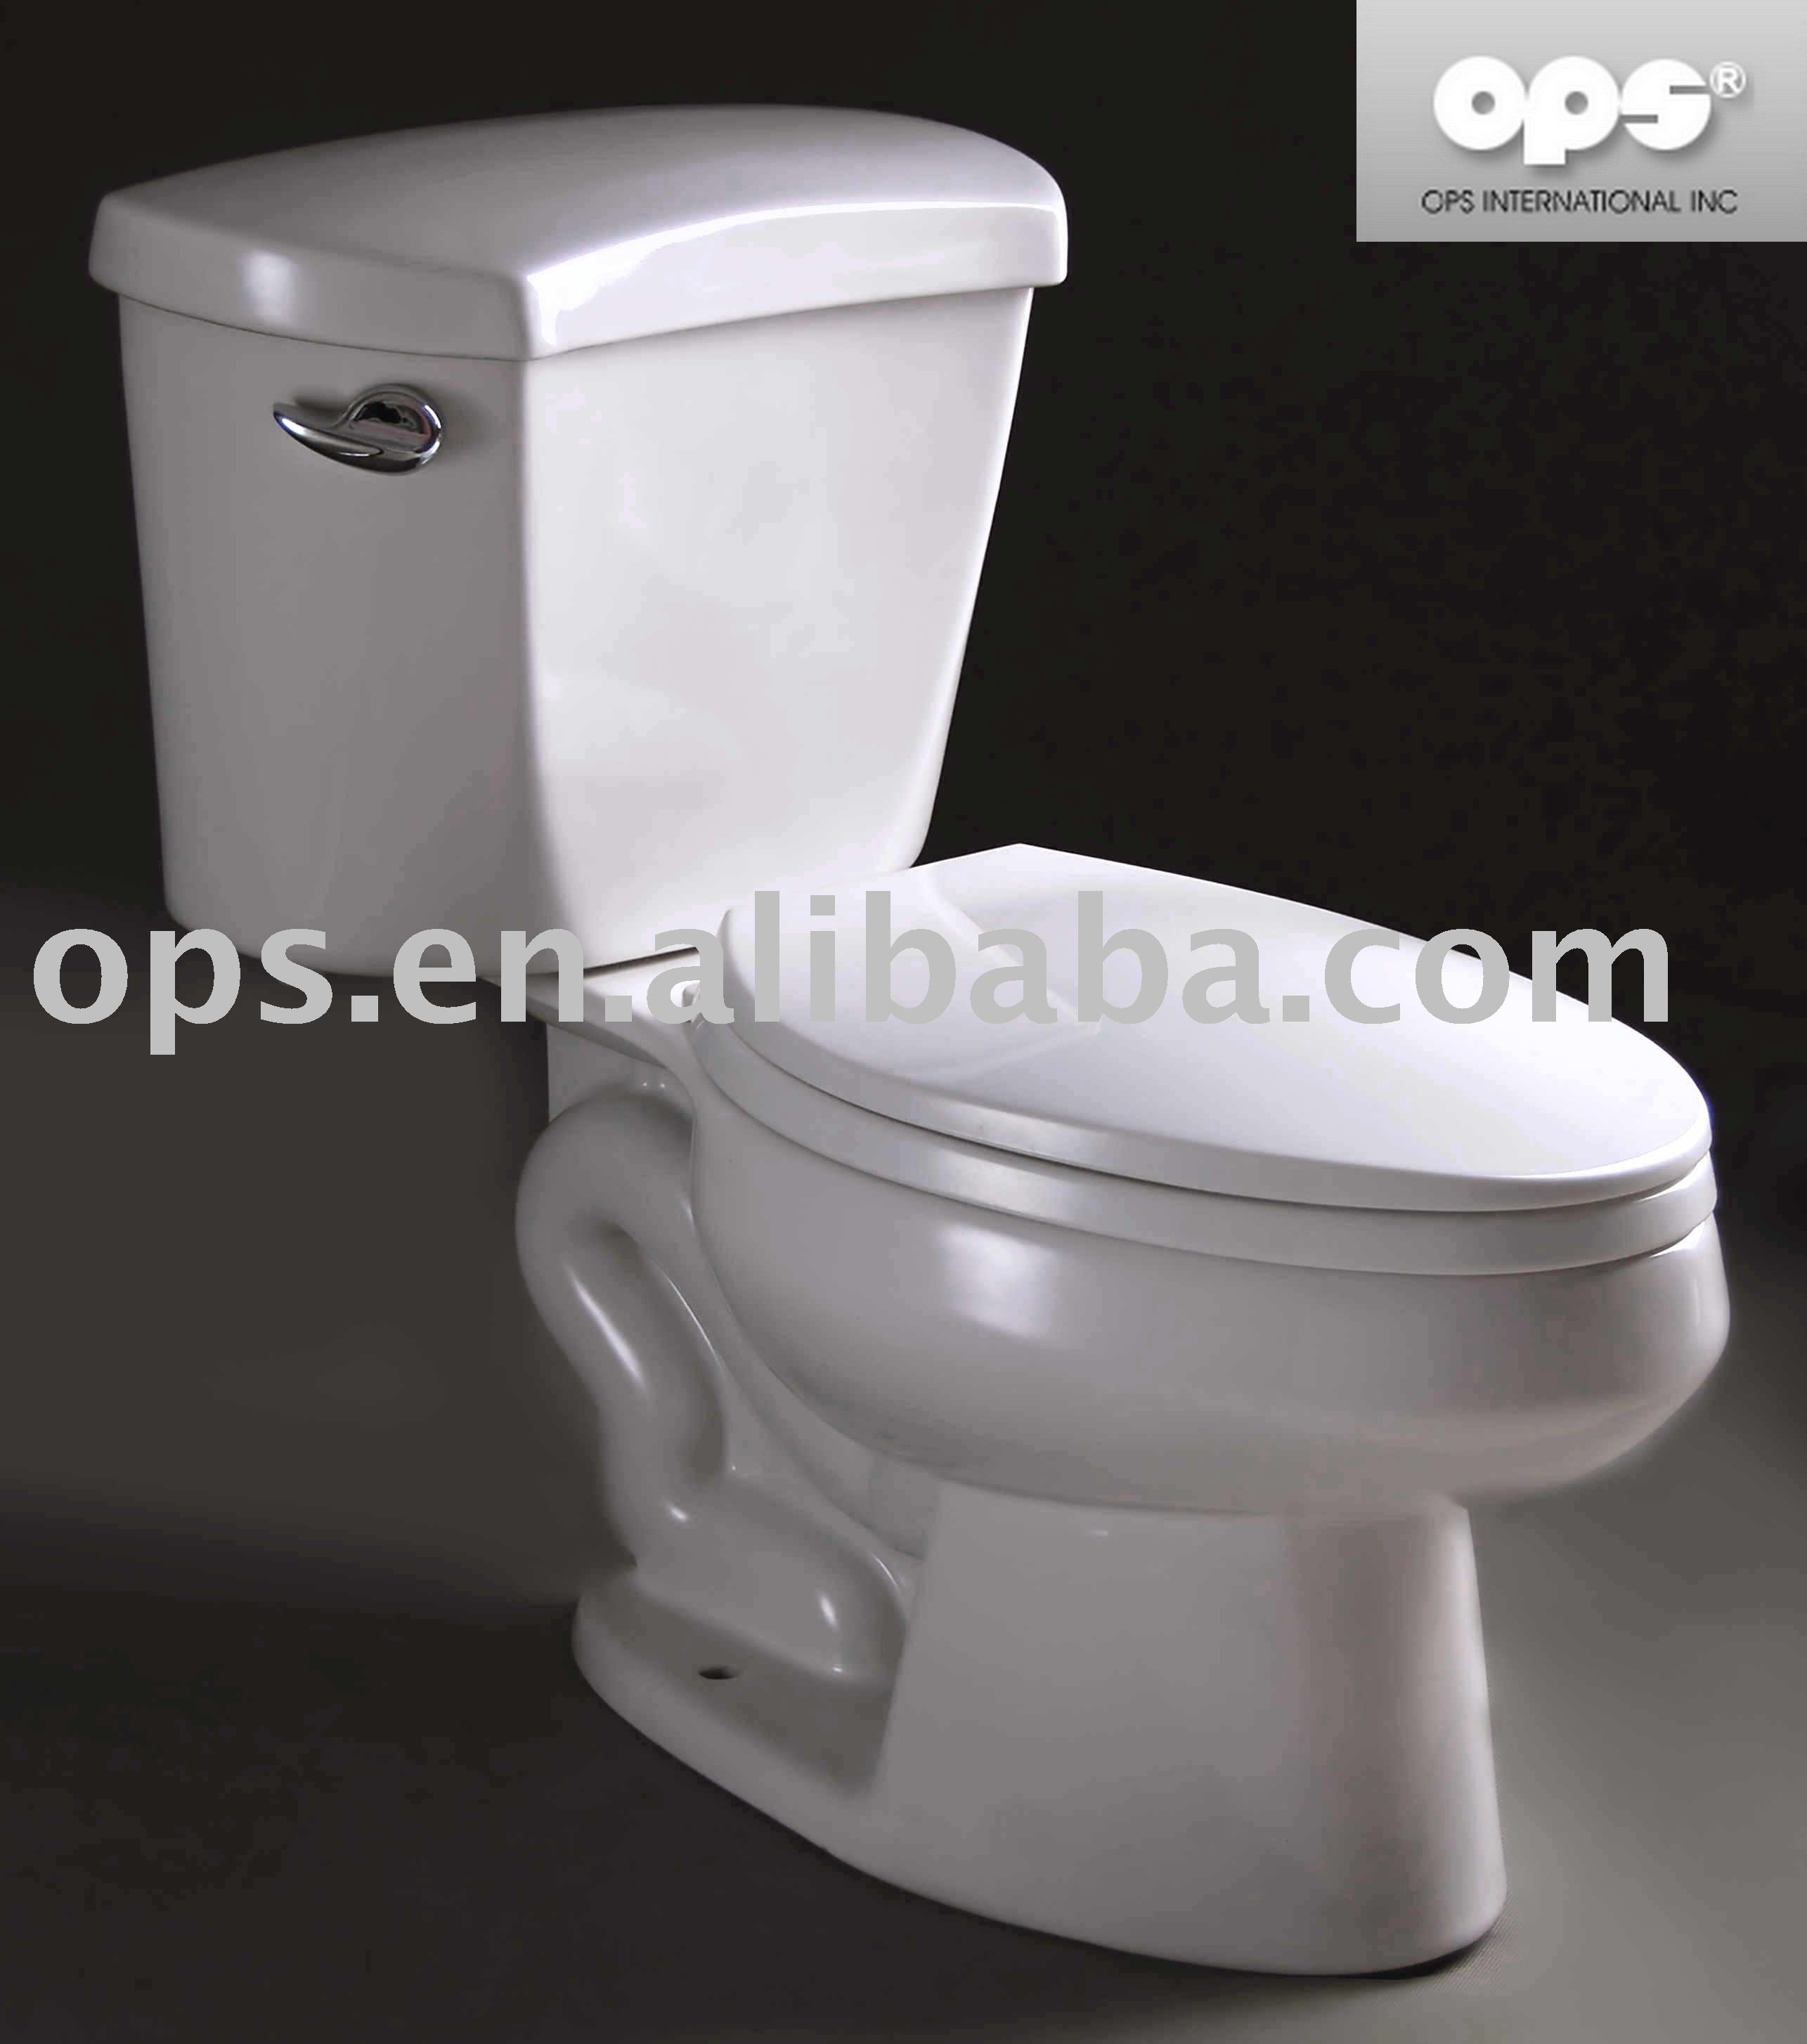 Resembling Elongated Kohler Toilet